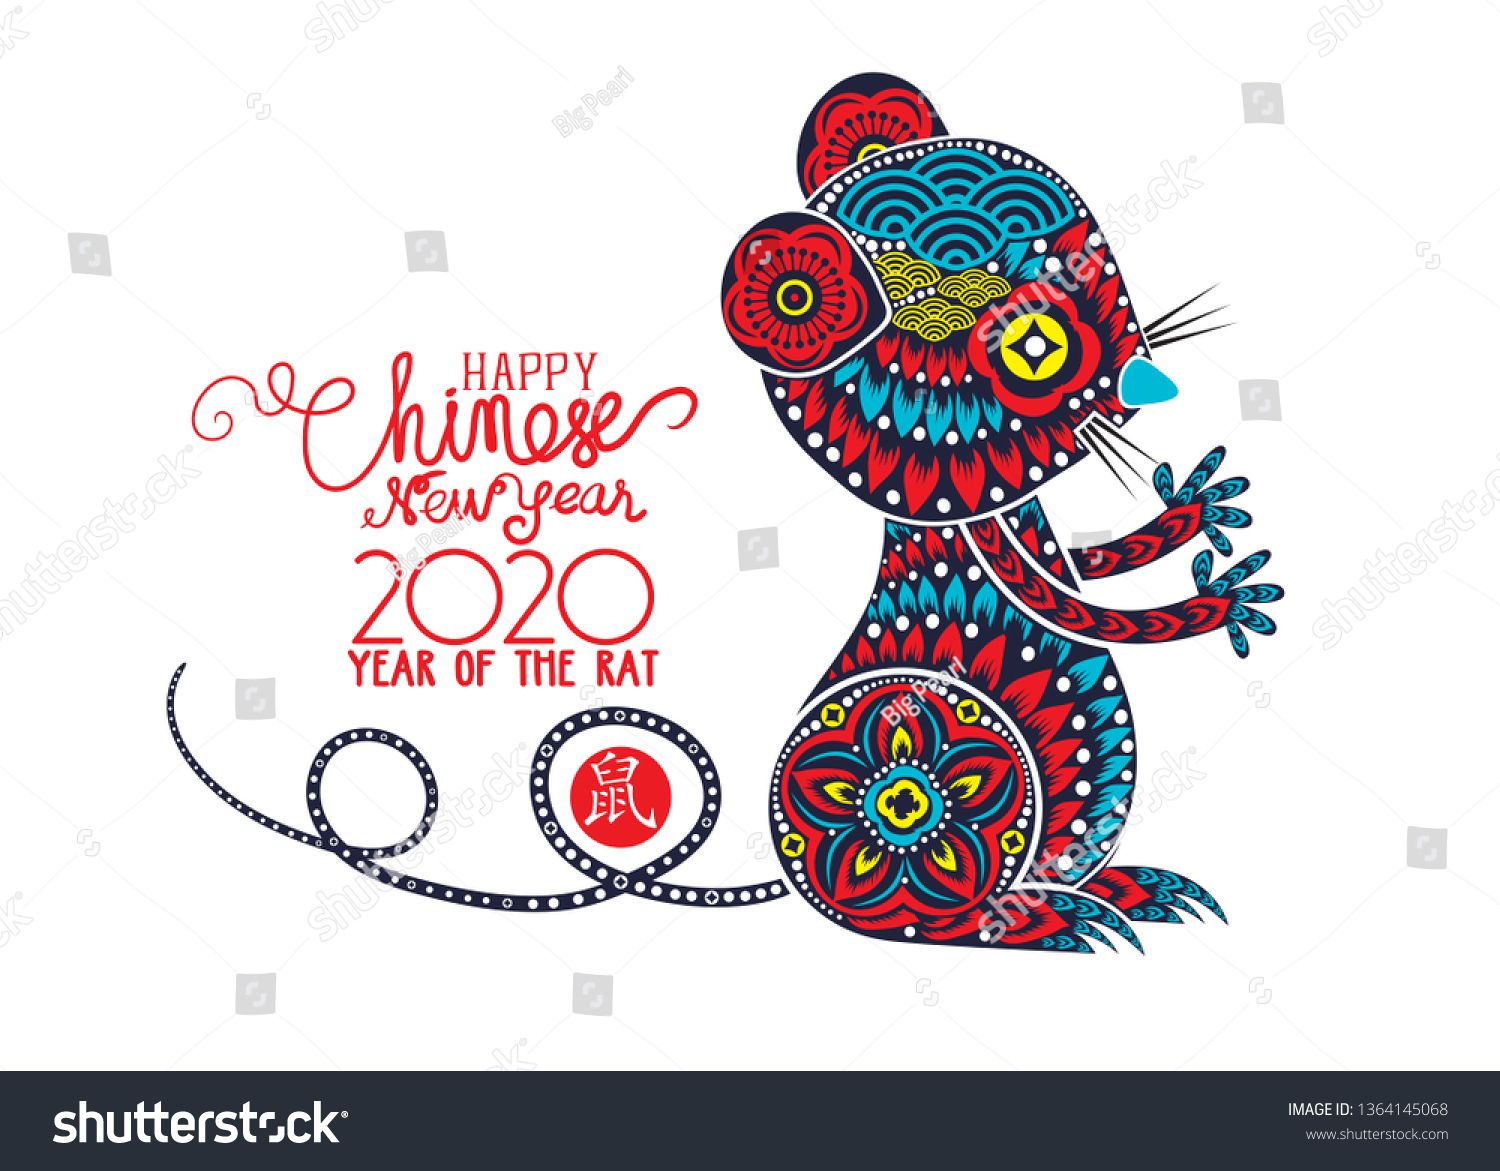 Ghim trên Chinese New Year 2020. Year of the RAT